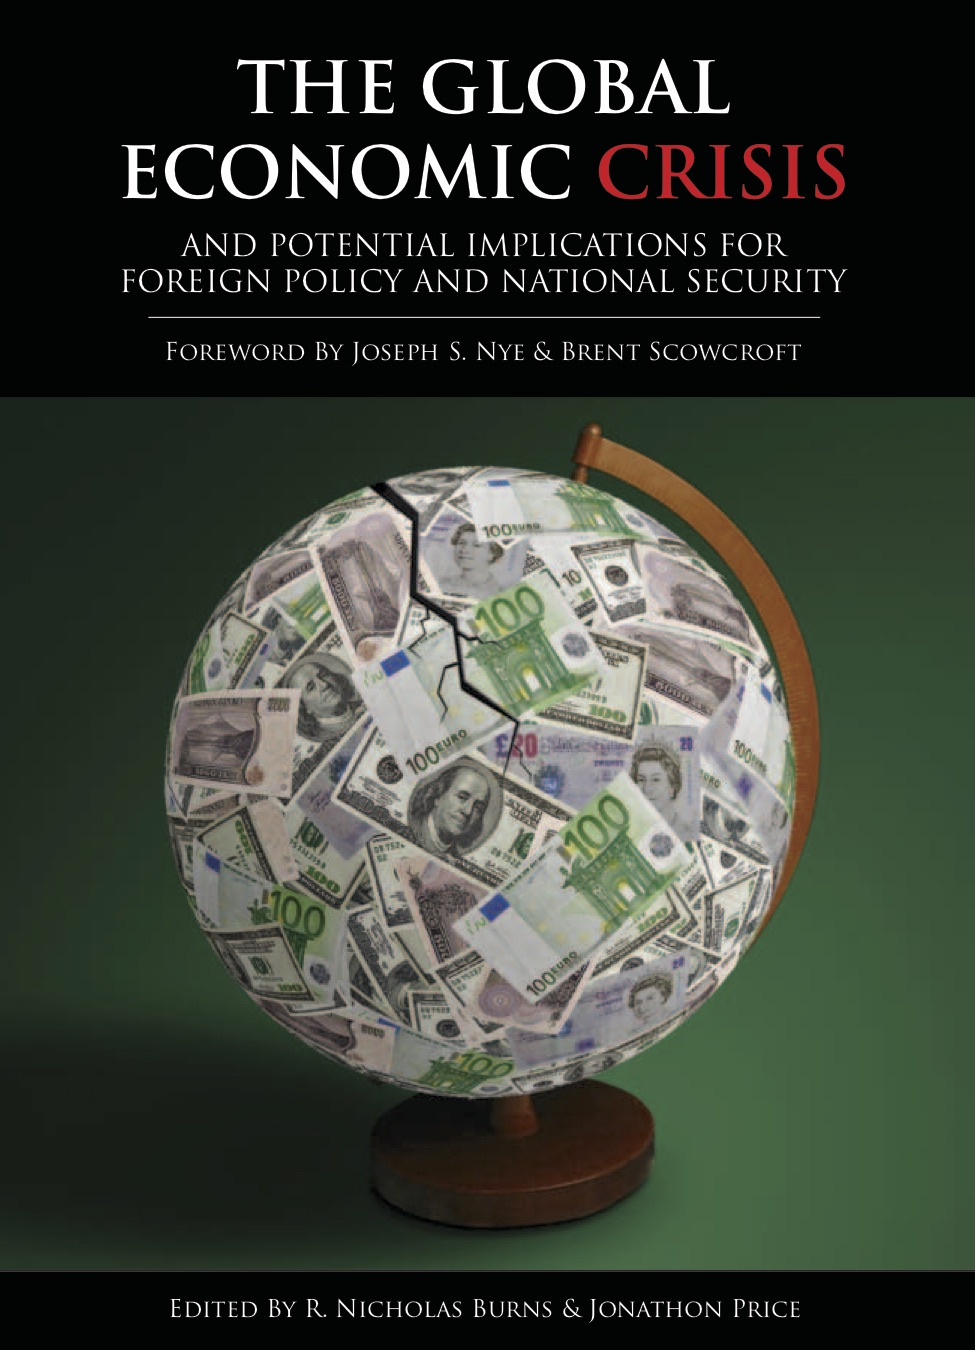 the global economic crisis - This book, a collection of papers prepared for the 2009 summer Aspen Strategy Group conference, addresses the critical intersection of the global financial recession and its potential impact on America's foreign policy and national security. The authors explore the possible shift in global power, the changing relationship between the U.S. and China, and the impact on America's development policy. They also assess the capacity of domestic and international institutions to respond to the crisis.Contributors include Richard Cooper, Kemal Dervis, Martin Feldstein, Michael Green, David Leonhardt, Sylvia Mathews Burwell, David McCormick, Laura Tyson, and Bruce StokesPublished: February 18, 2010